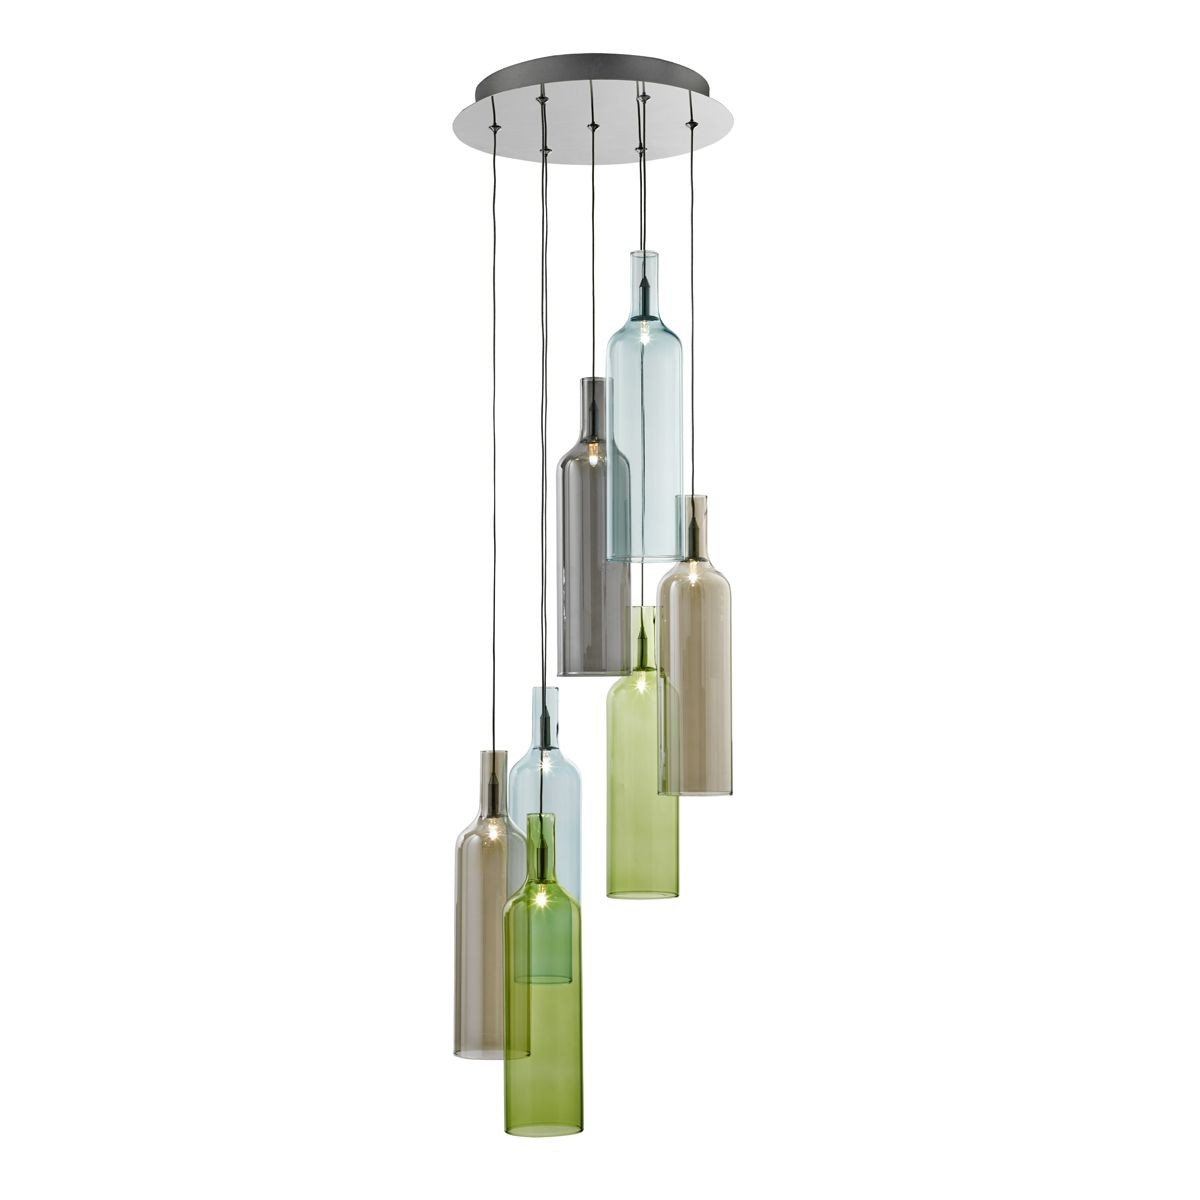 Vibrant Multi-Drop 7 Light Ceiling Light - Chrome with Smoked Coloured Glass